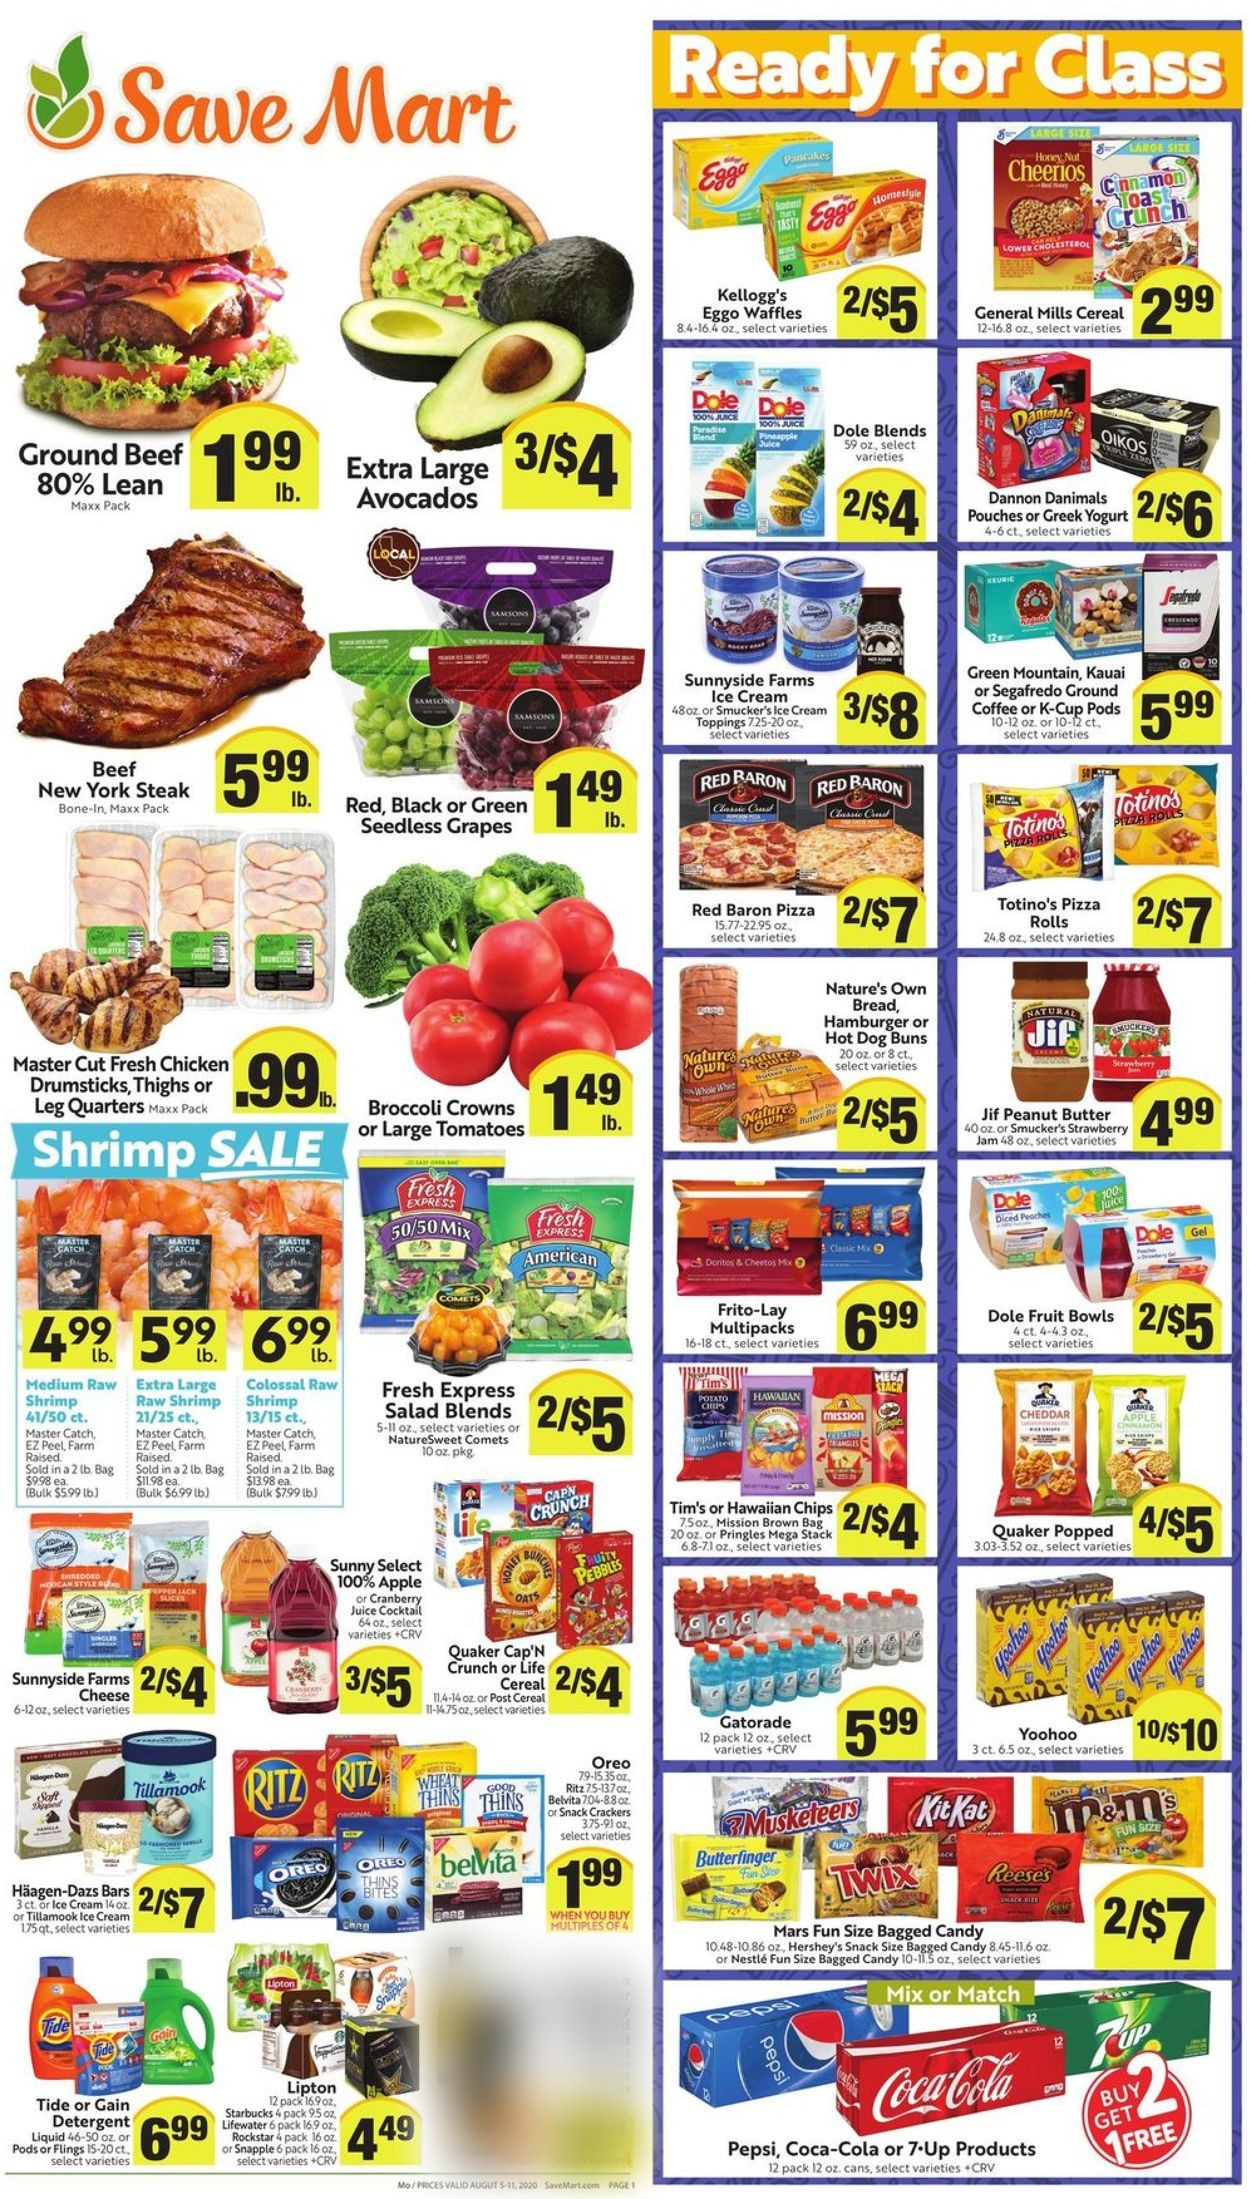 Save Mart Christmas Trees 2020 Save Mart Current weekly ad 08/05   08/11/2020   frequent ads.com